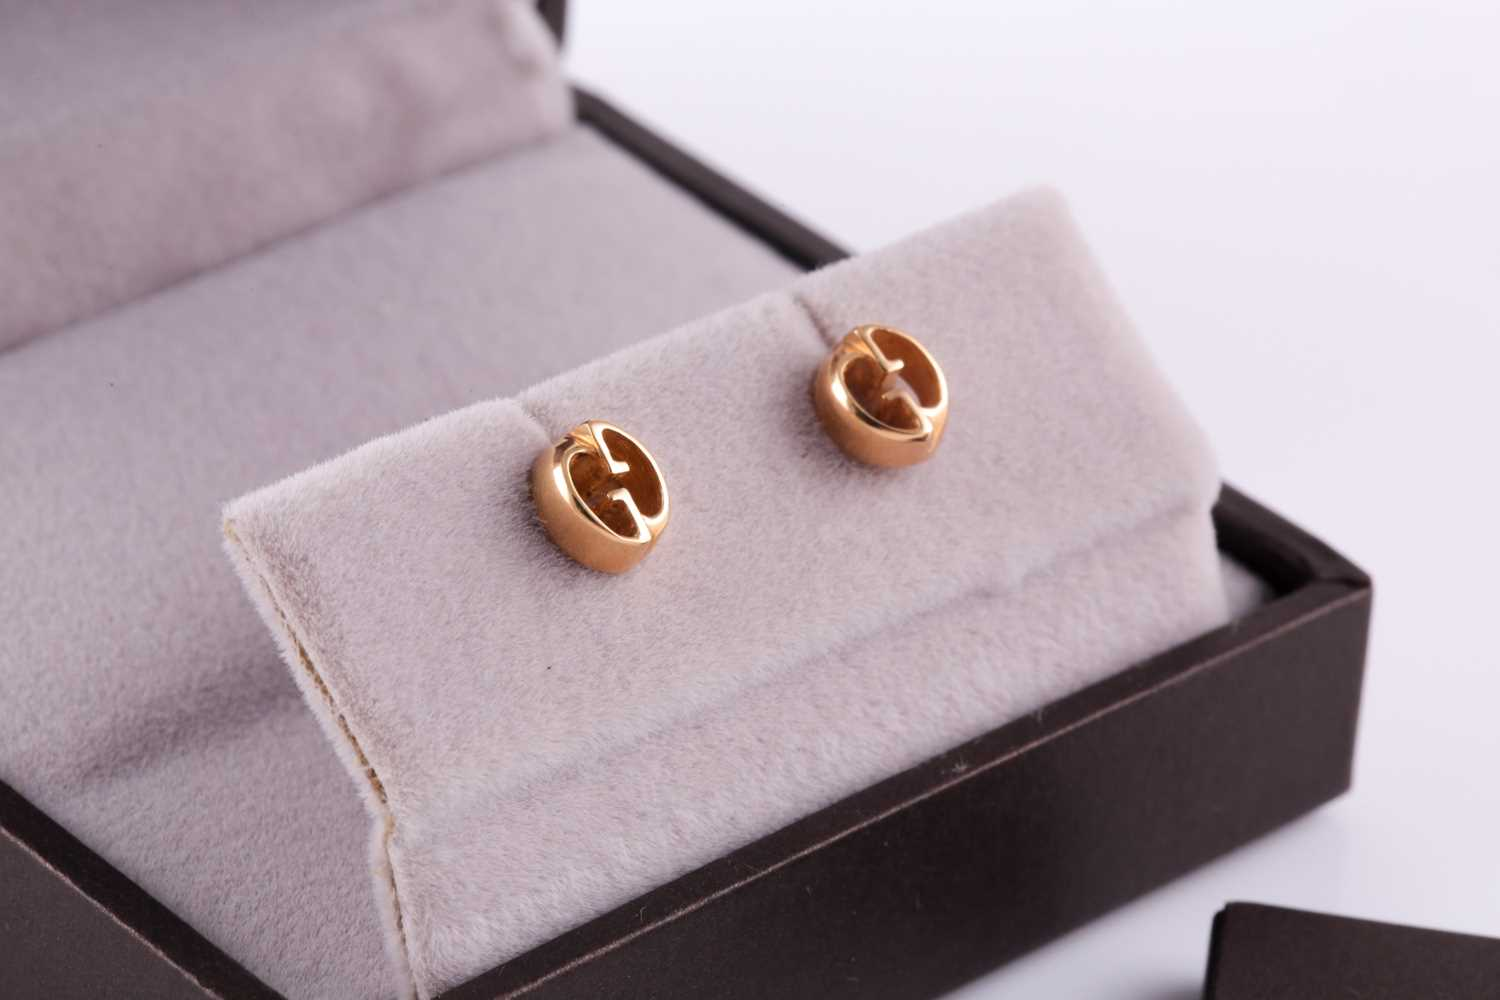 Gucci. A pair of 18ct yellow gold stud earrings of double G design, in original box and outer box. - Image 4 of 5